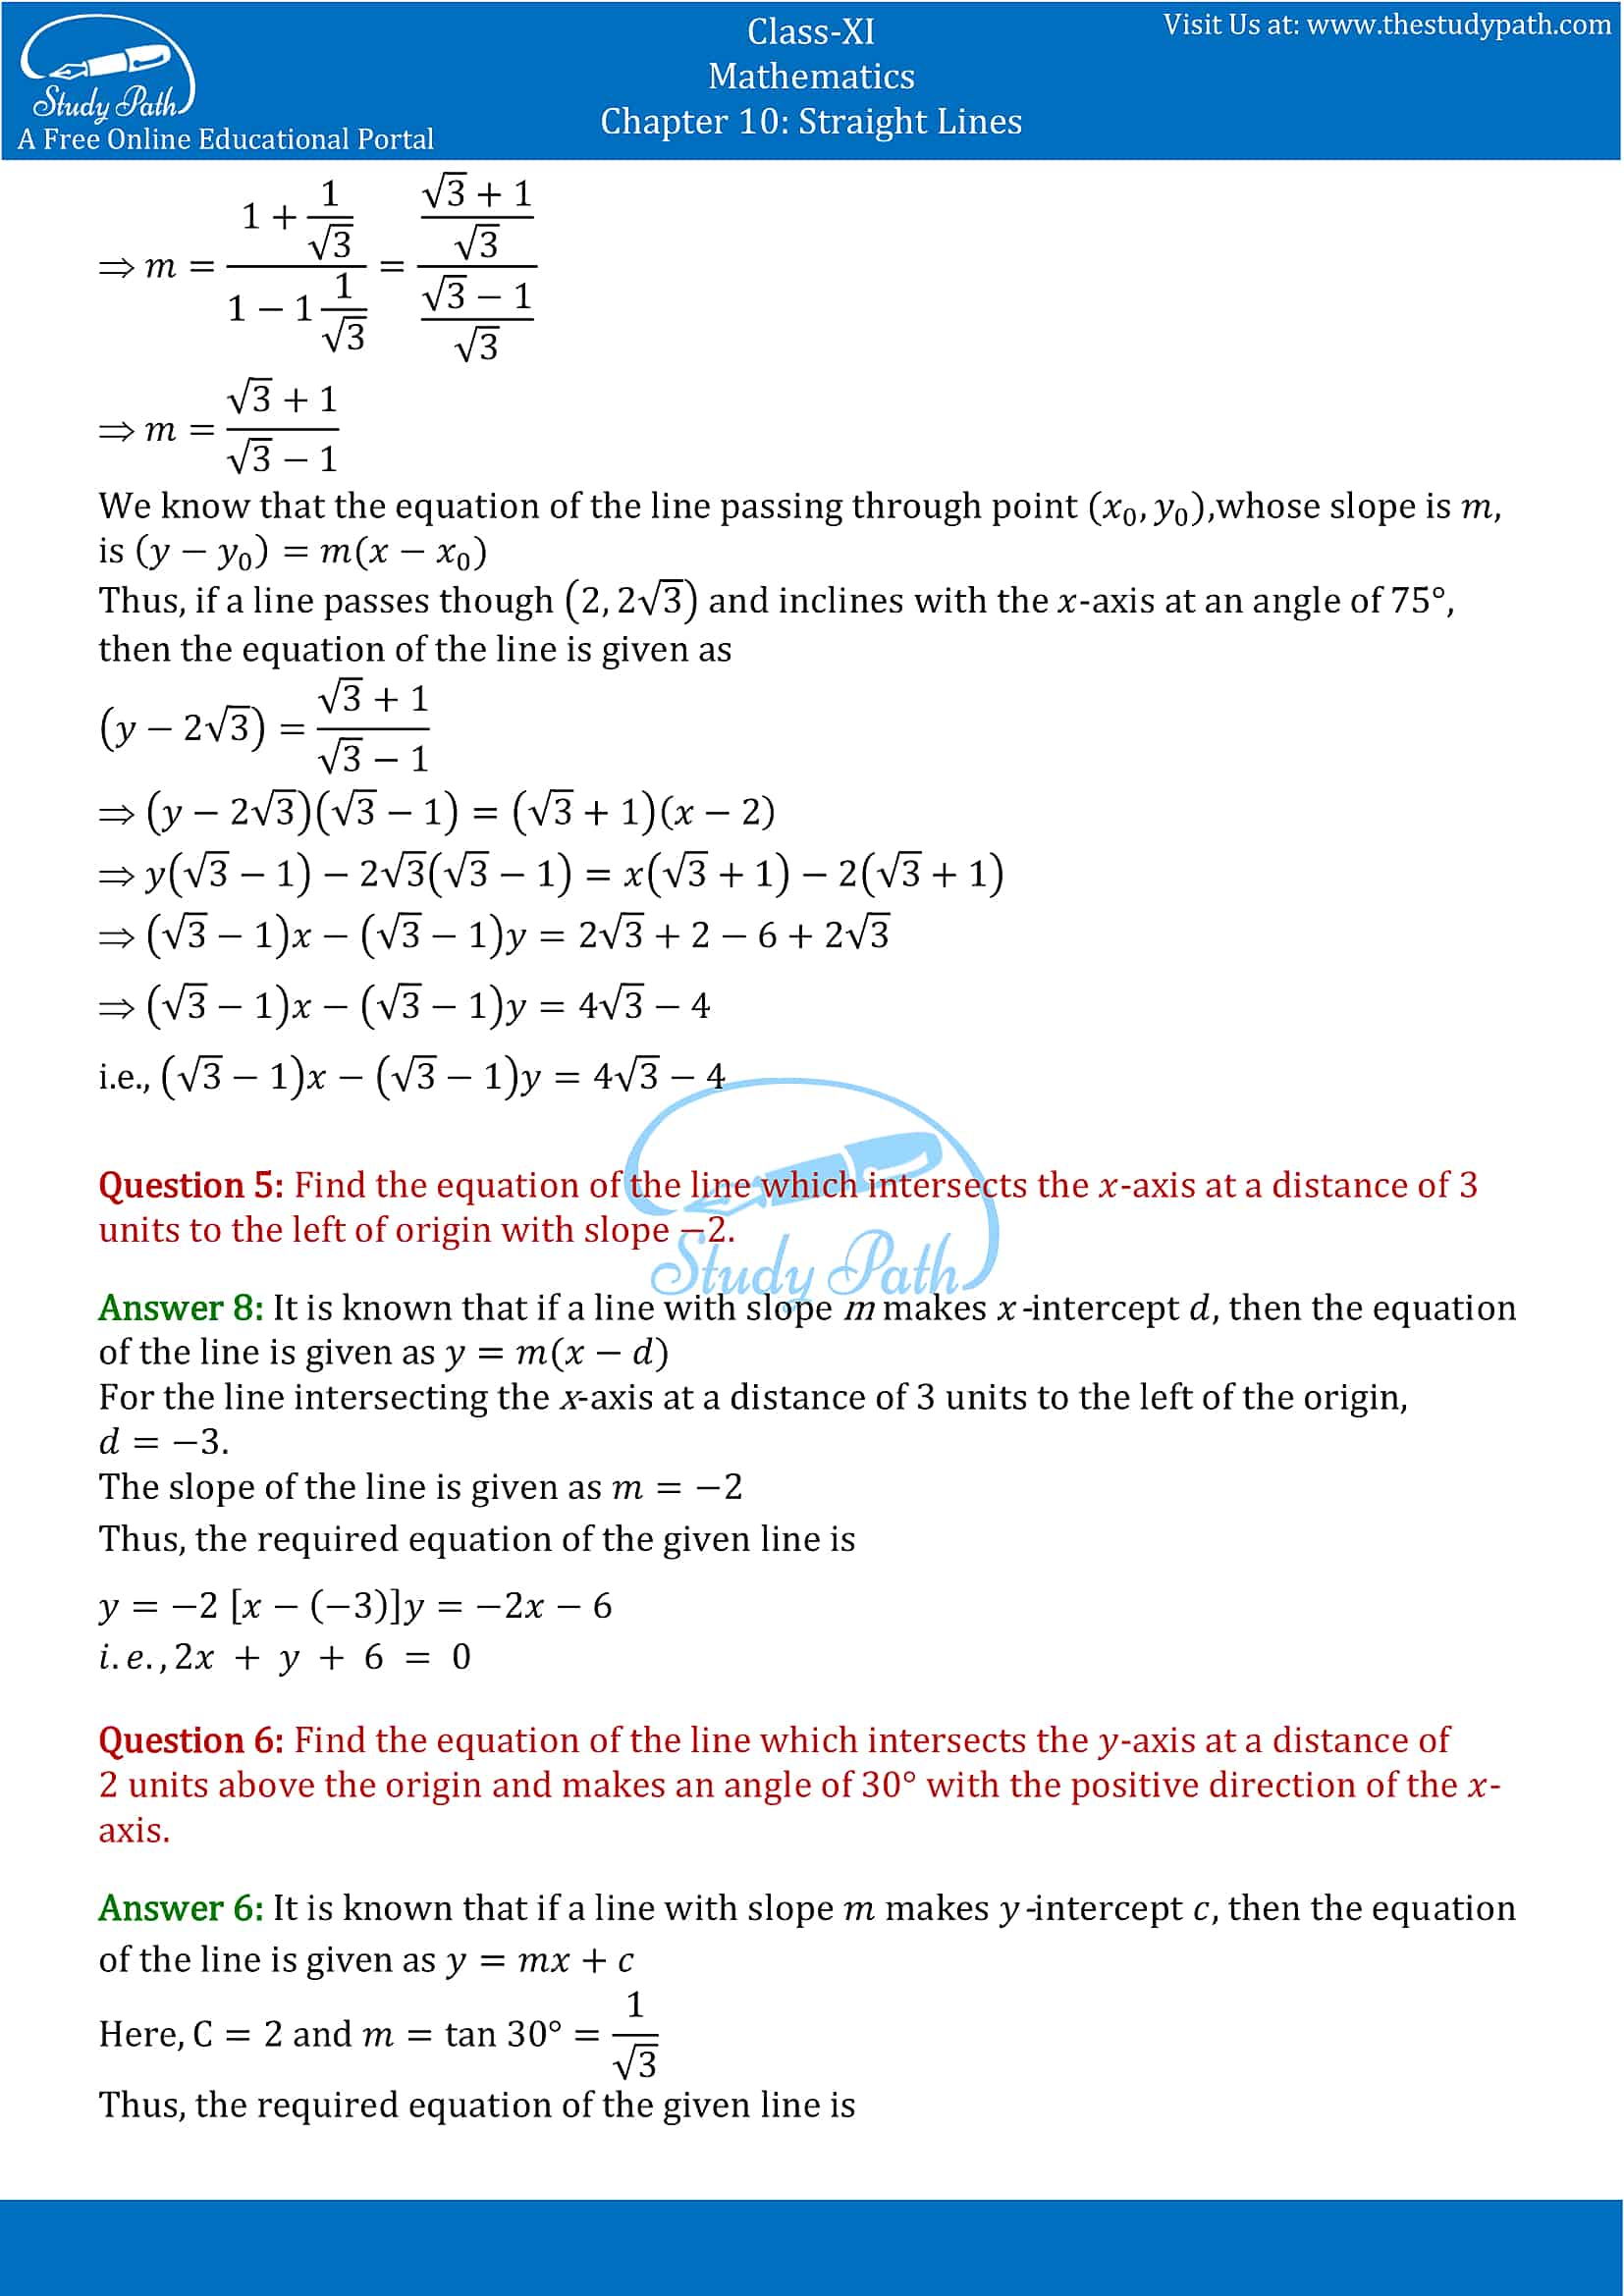 NCERT Solutions for Class 11 Maths chapter 10 Straight Lines Exercise 10.2 Part-2